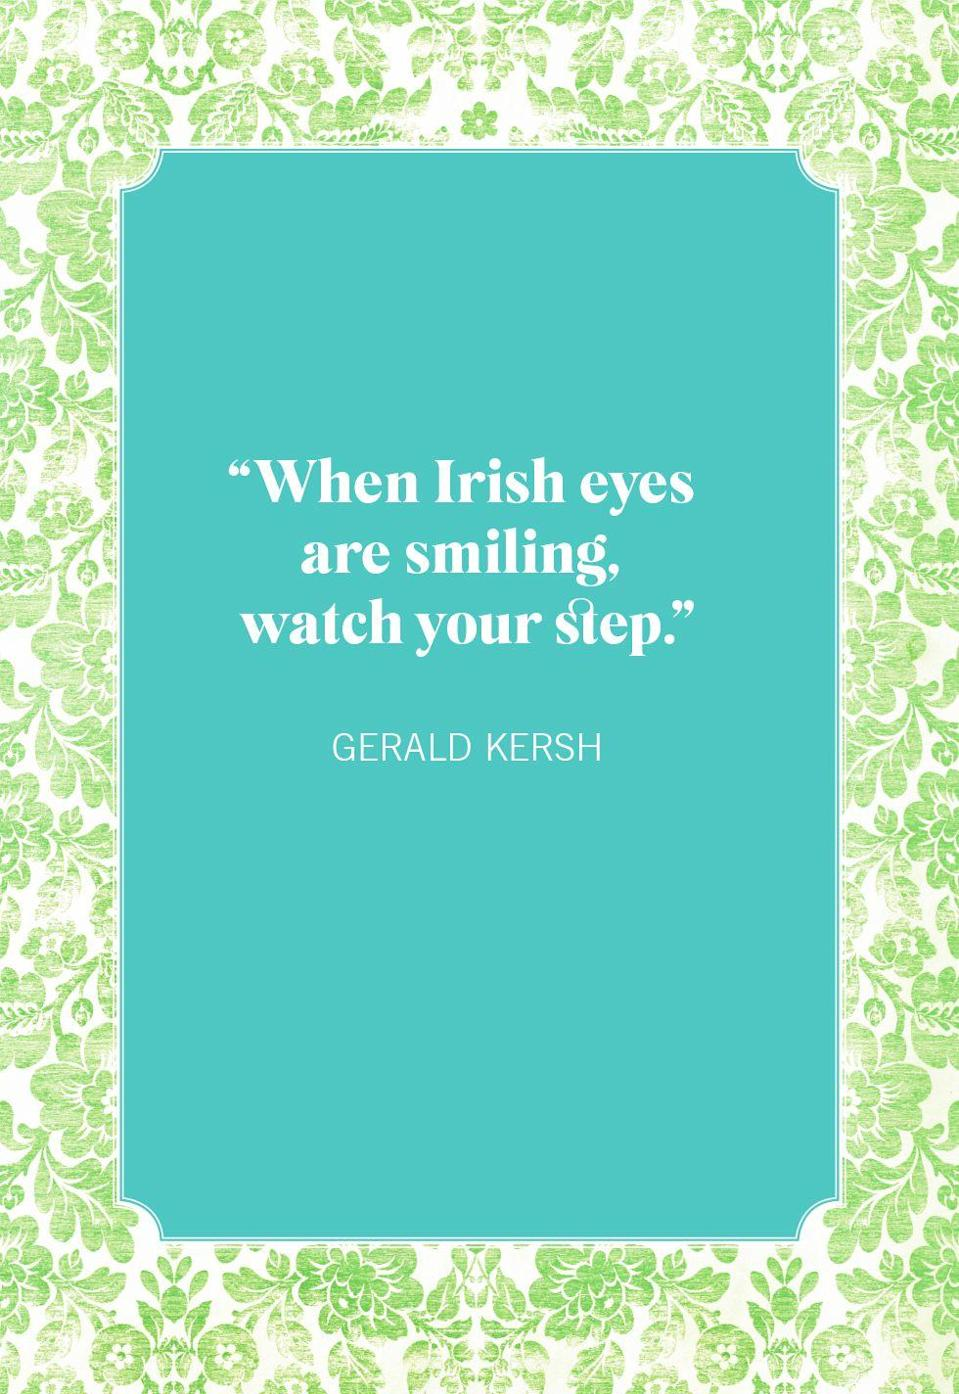 "<p>""When Irish eyes are smiling, watch your step.""</p>"